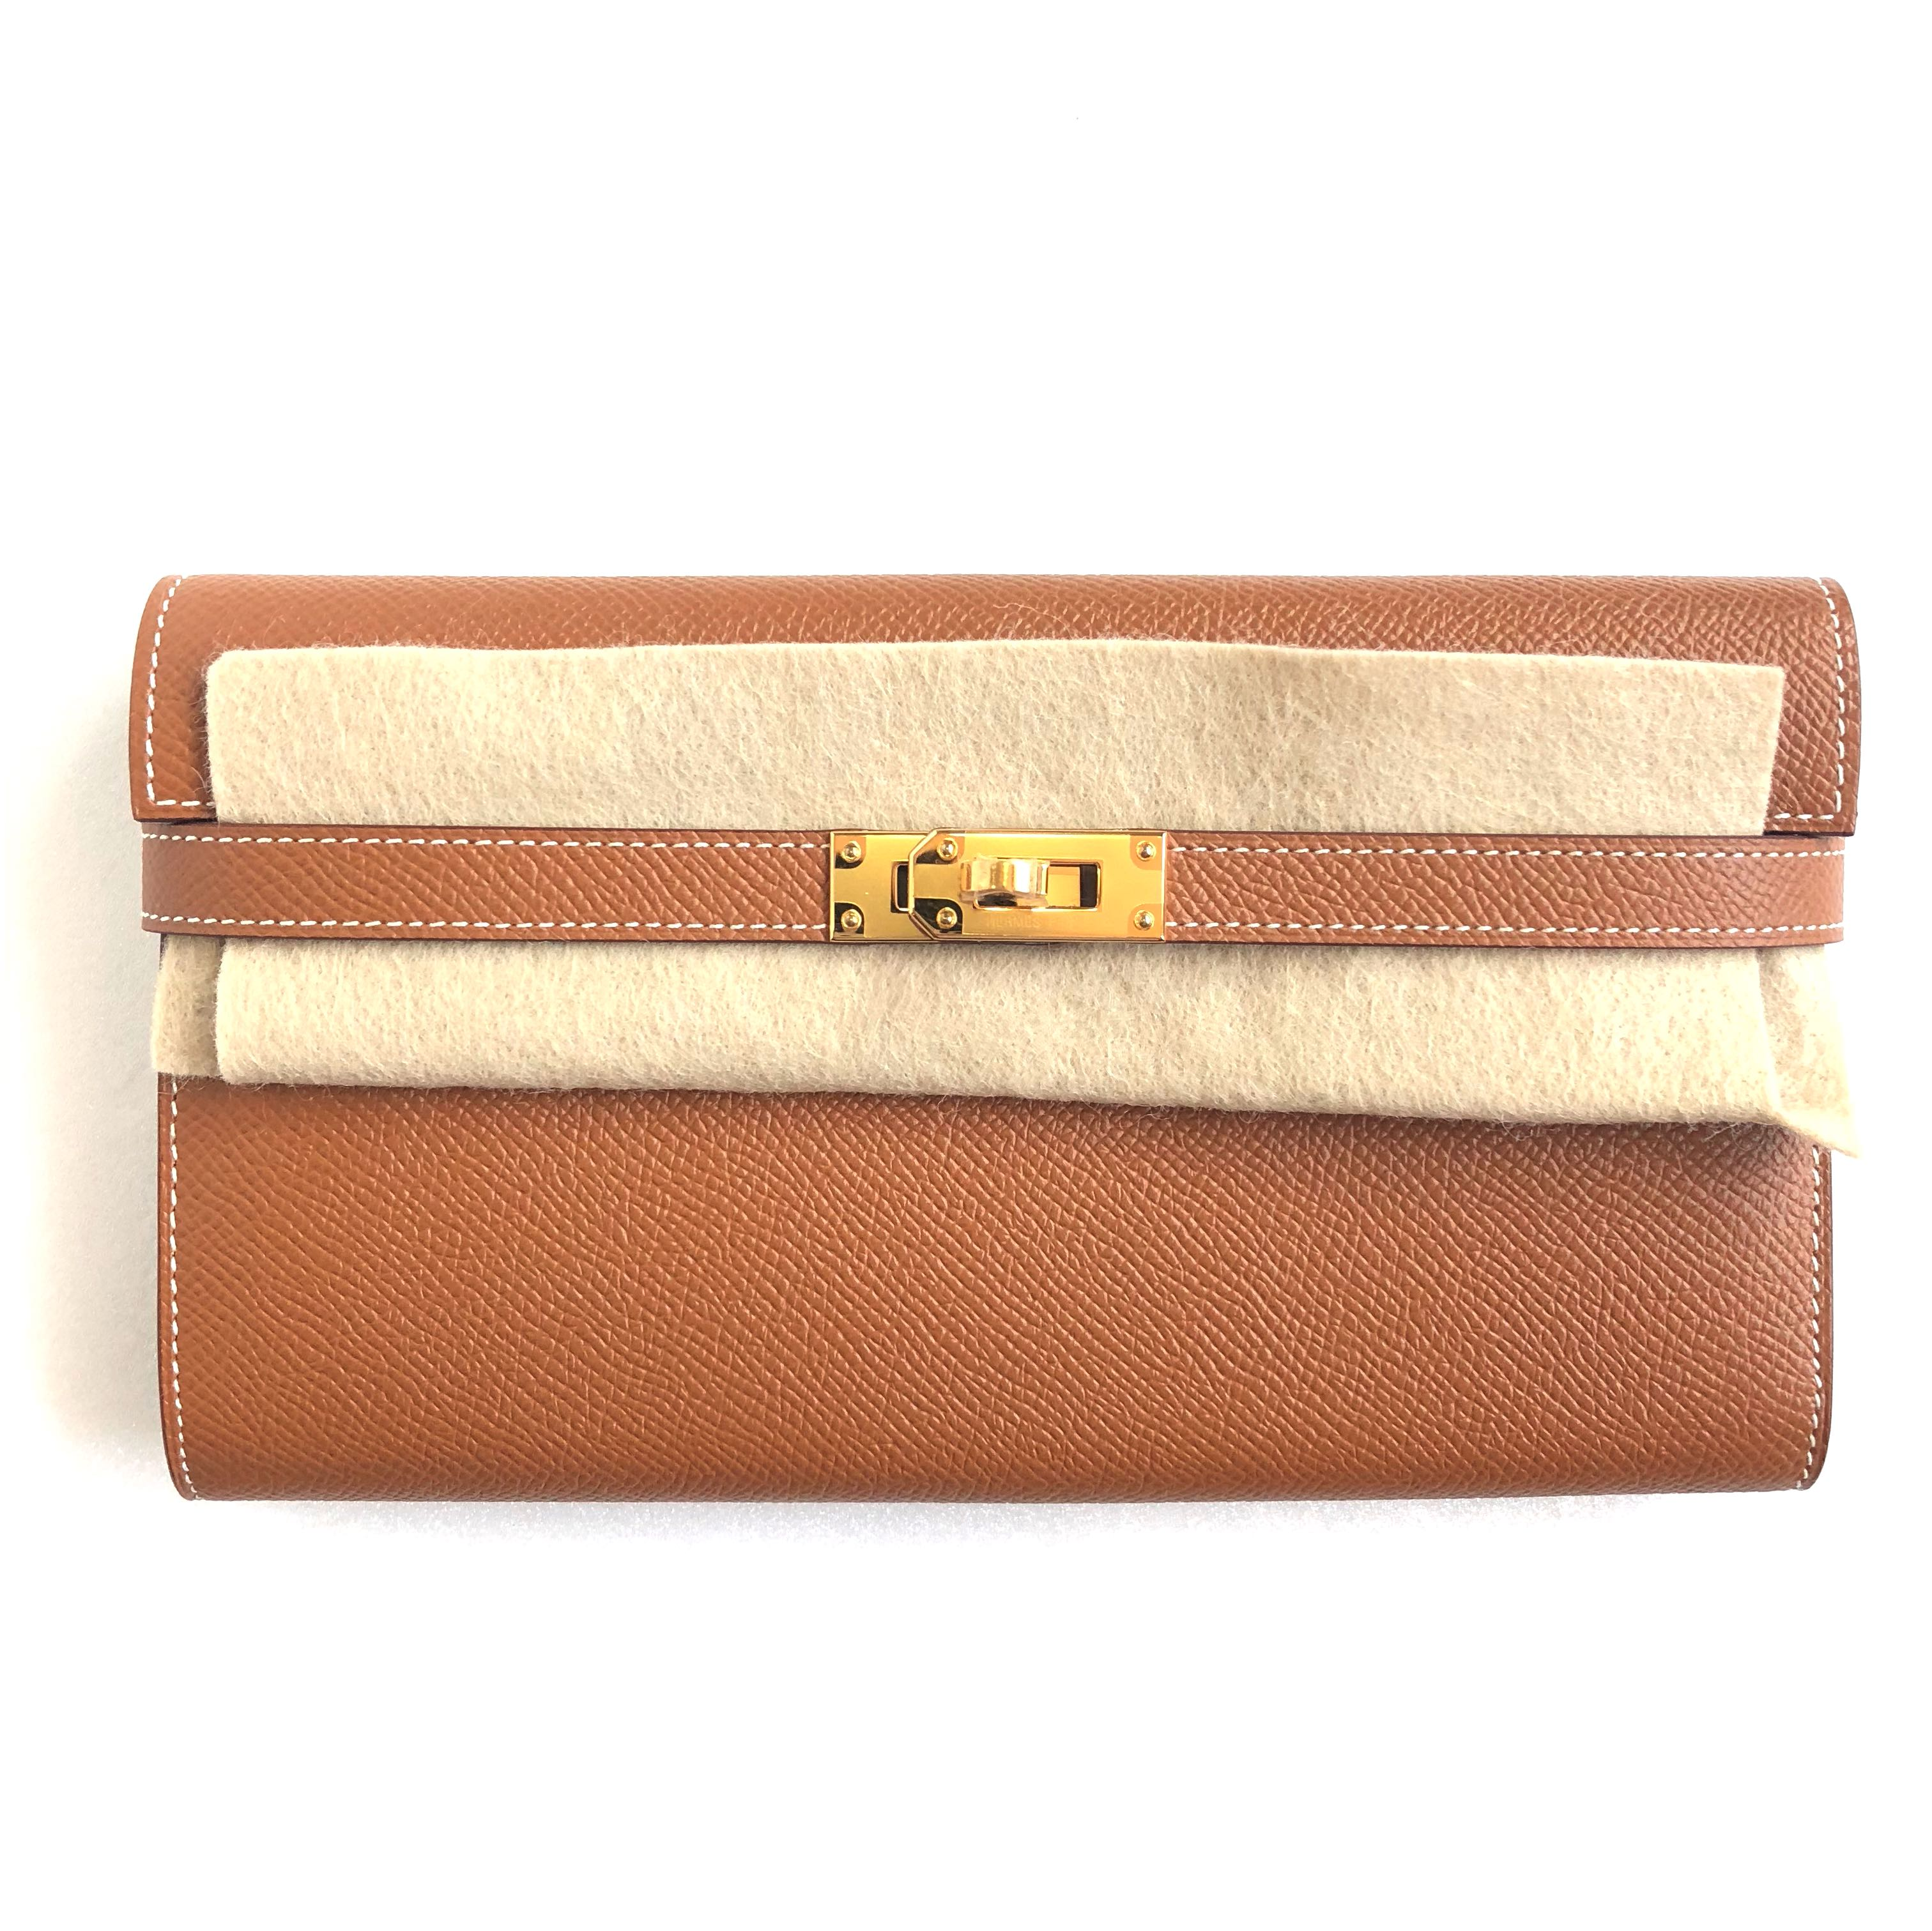 ddf2f913b1f5 Hermes - Gold Kelly Wallet Classique in Epsom with GHW